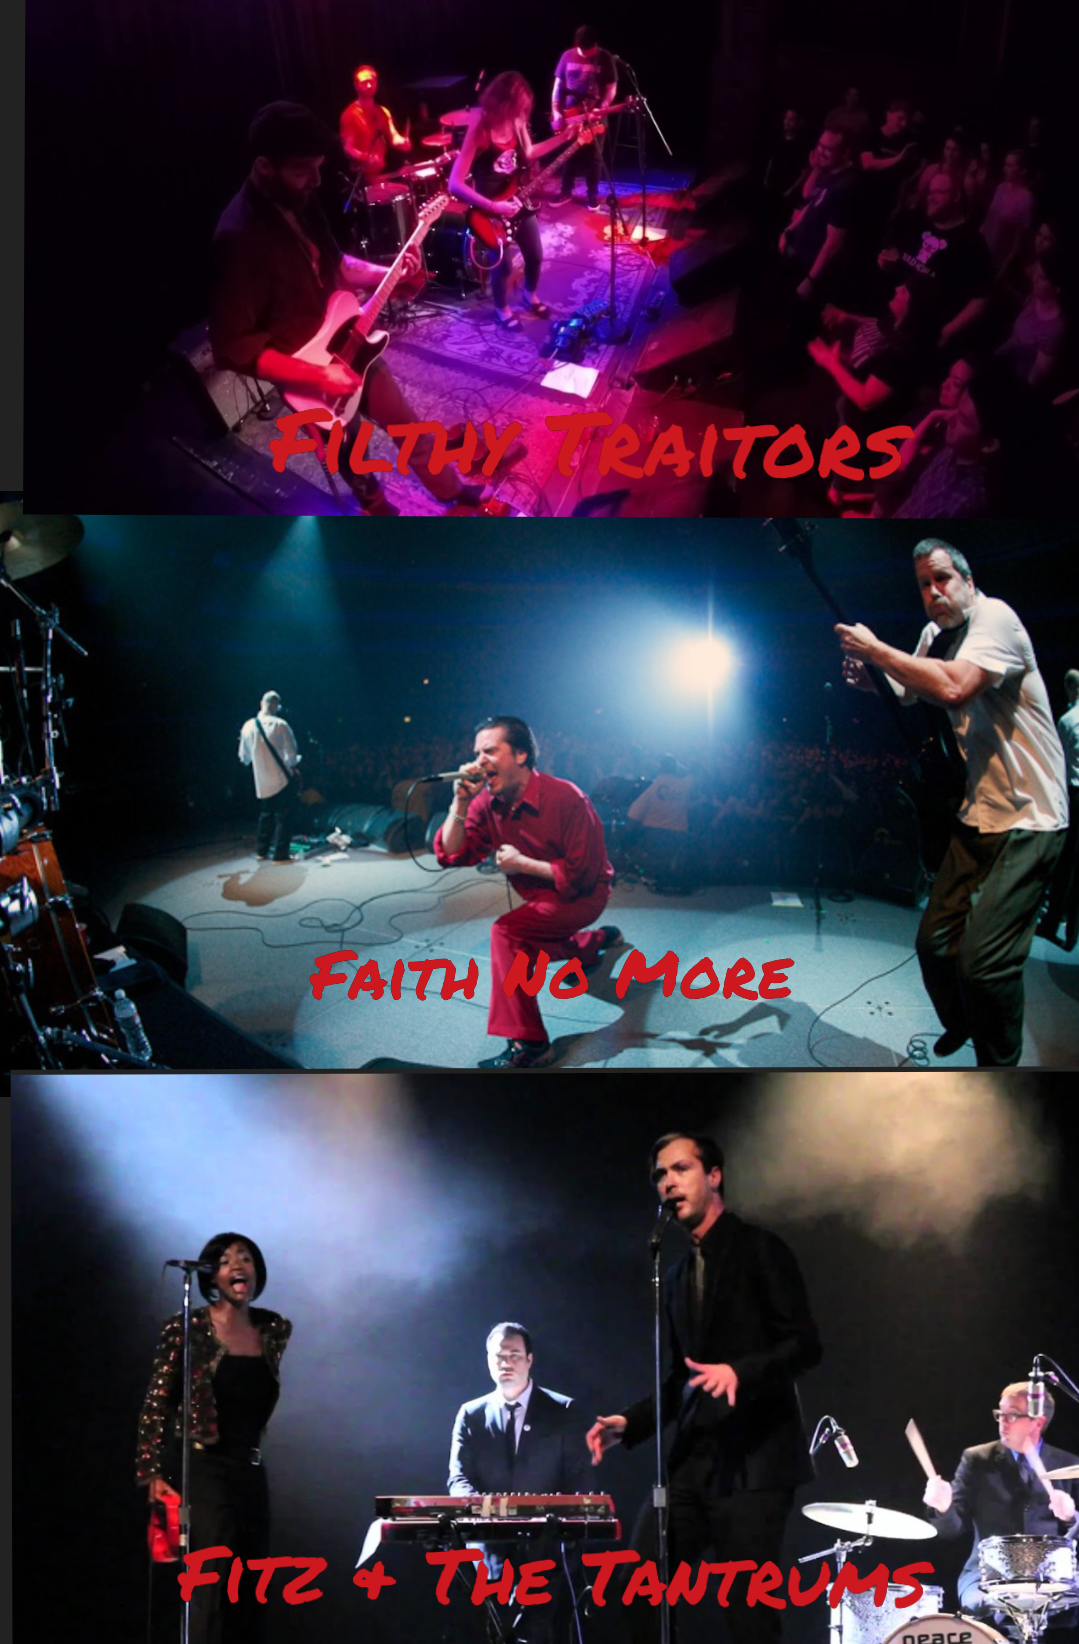 Rock Revival Review: Filthy Traitors, Faith No More, and Fitz & The Tantrums